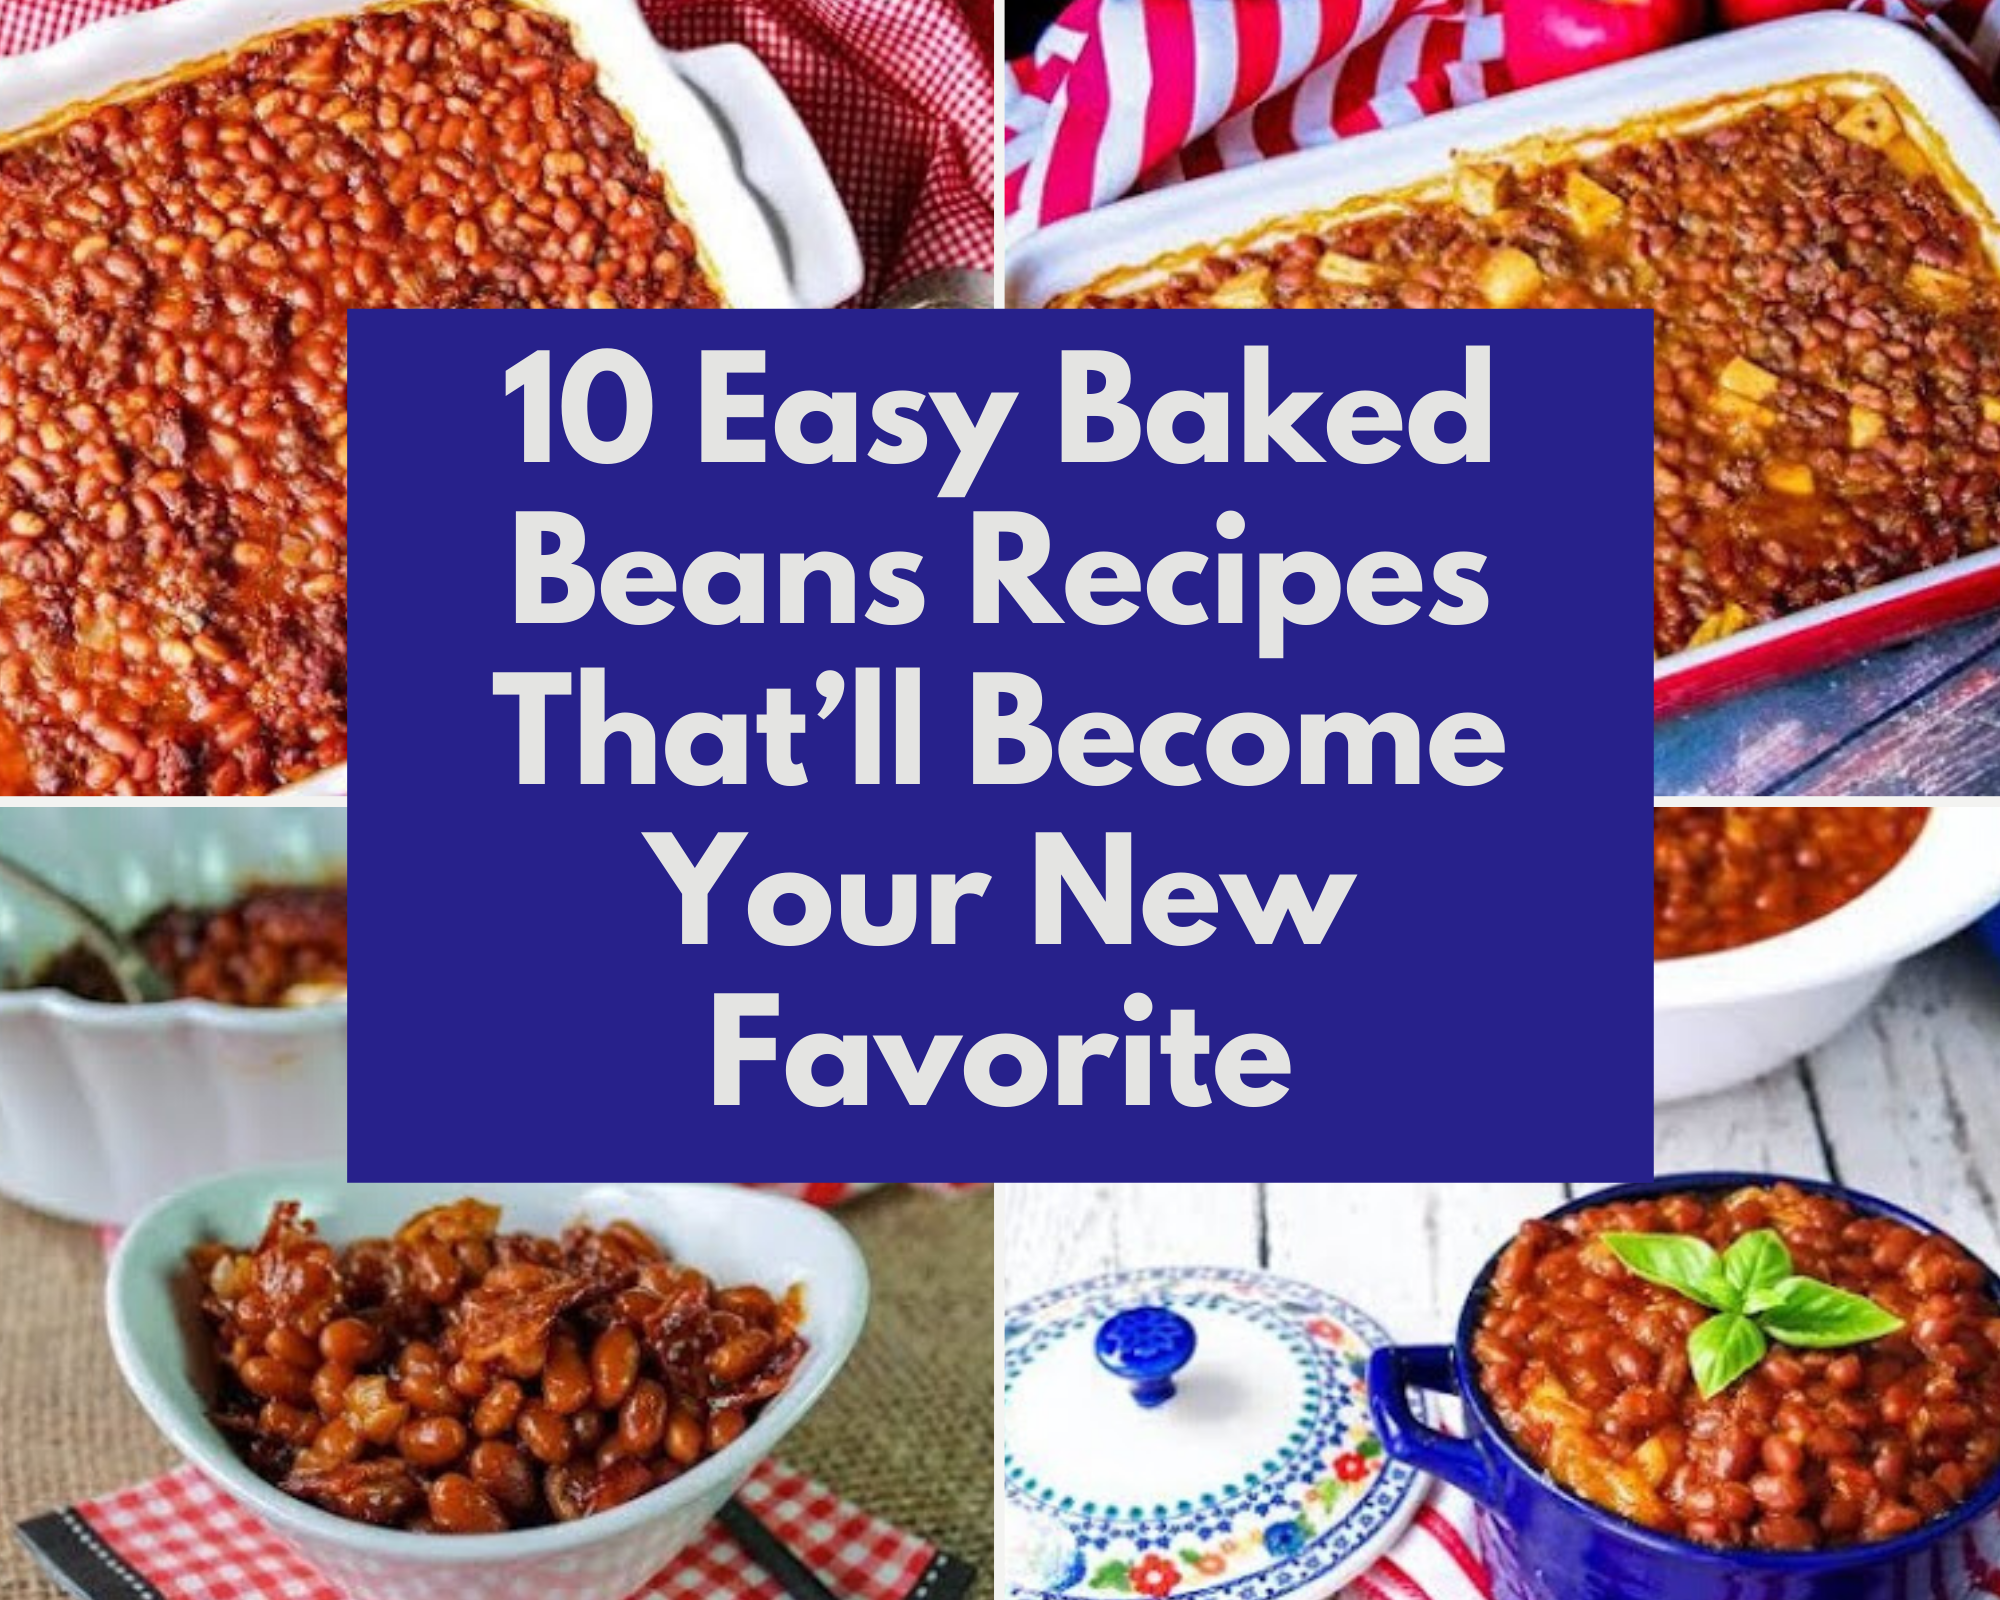 Easy baked bean recipes